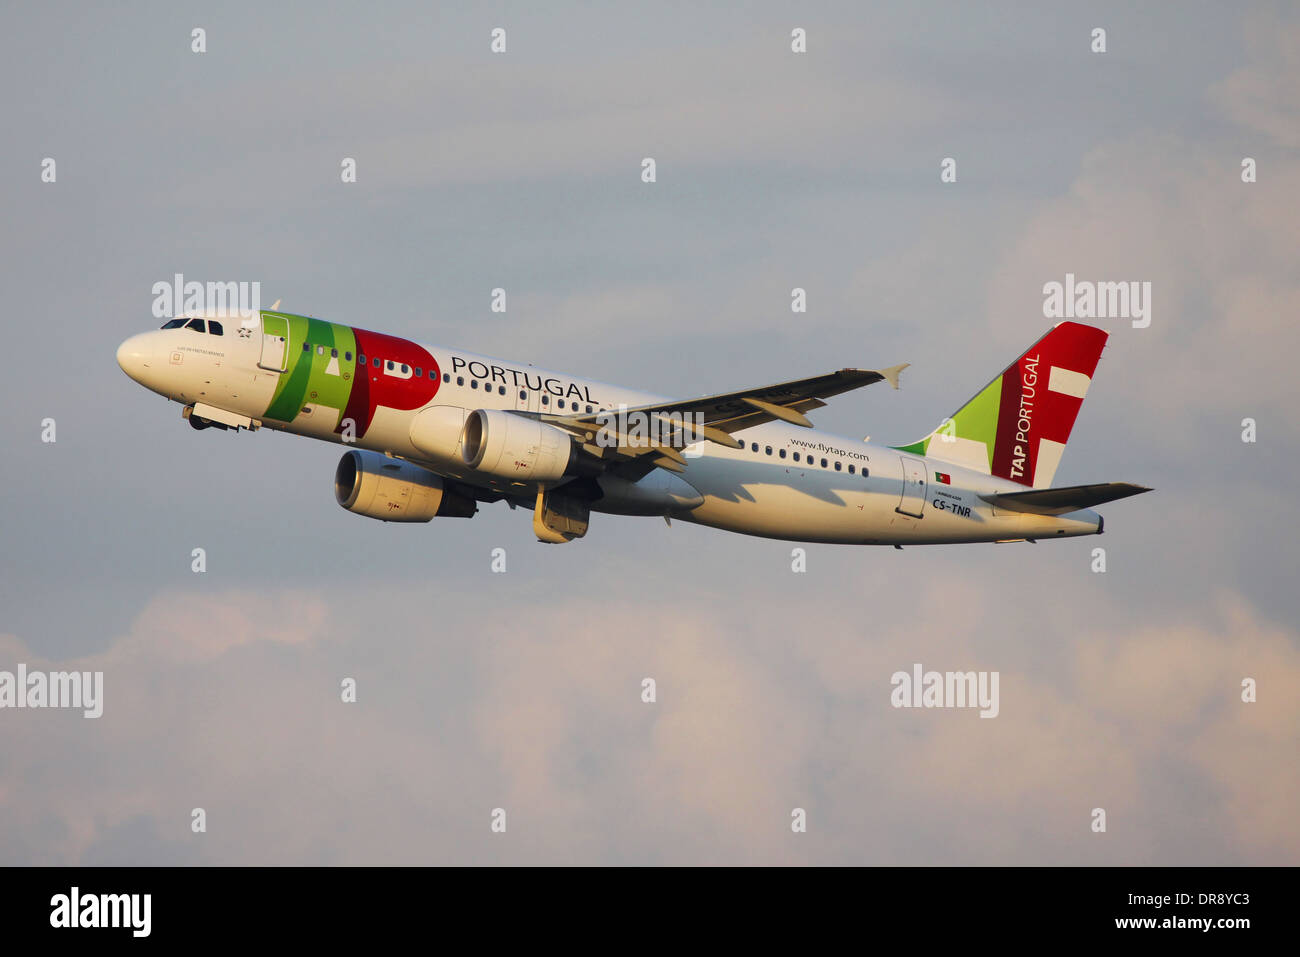 TAP Portugal Airlines Airbus A320 taking off from Moscow DME airport to Lisbon LIS - Stock Image